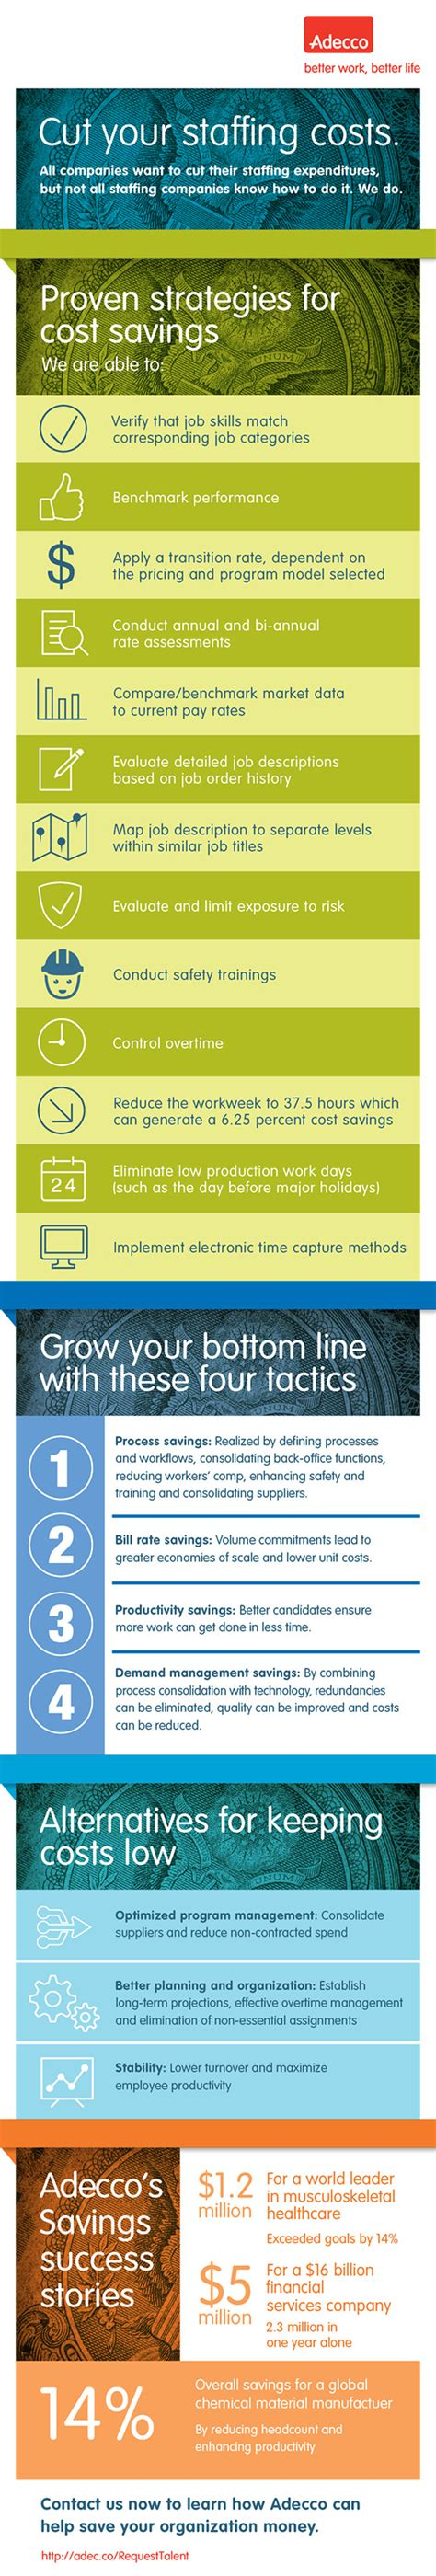 Adecco Background Check Cut The Cost Of Hiring Employees Staffing Infographic